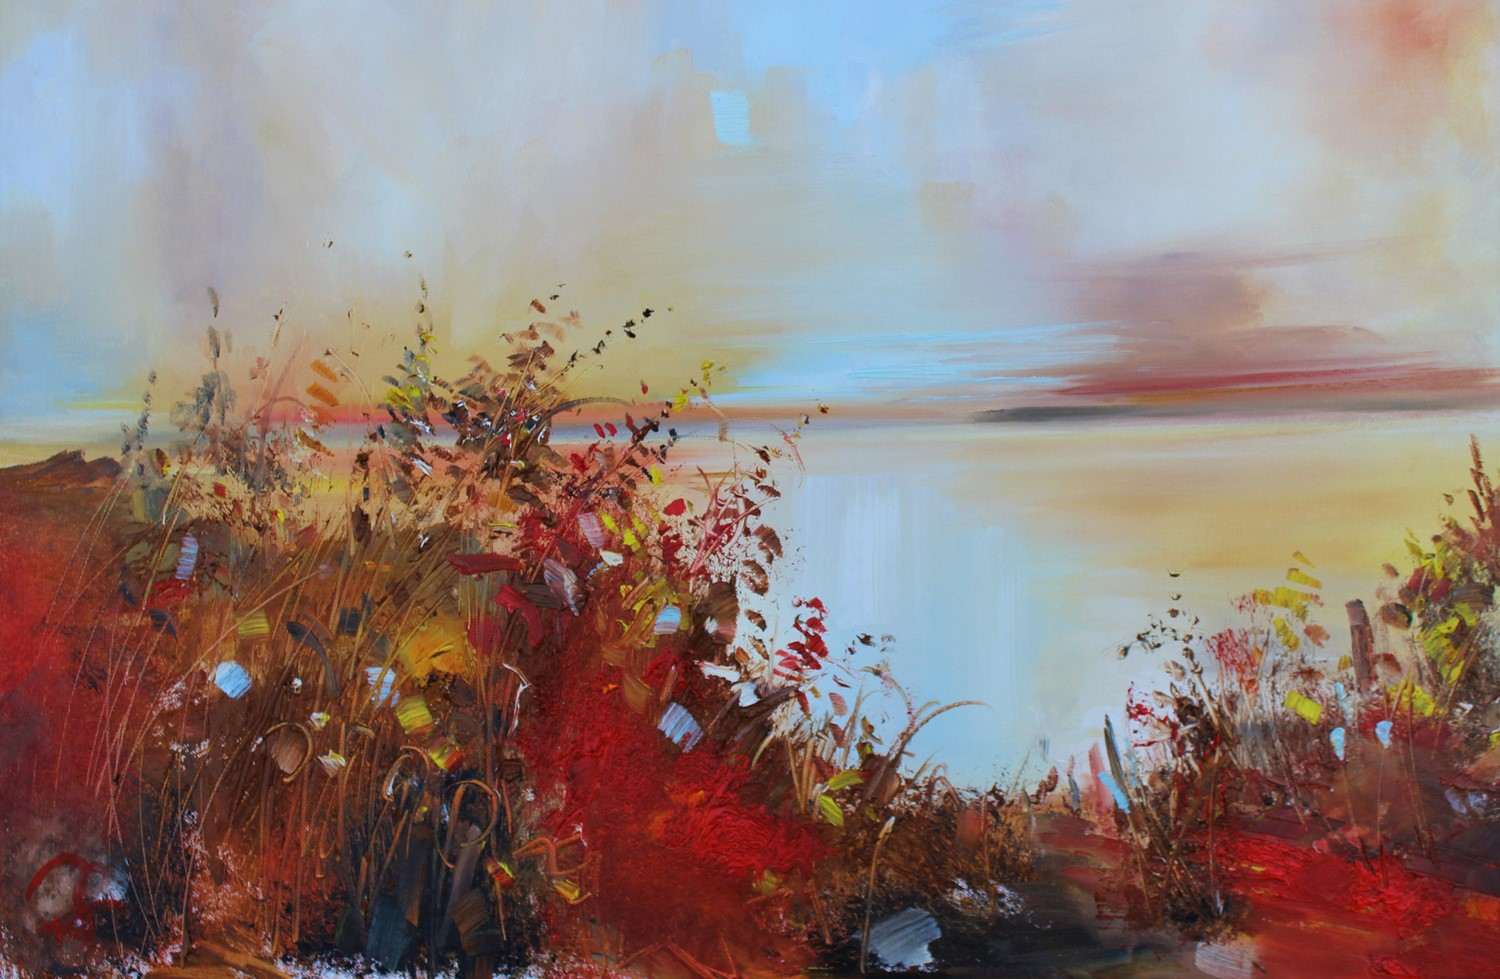 'Through bracken and wild reeds' by artist Rosanne Barr